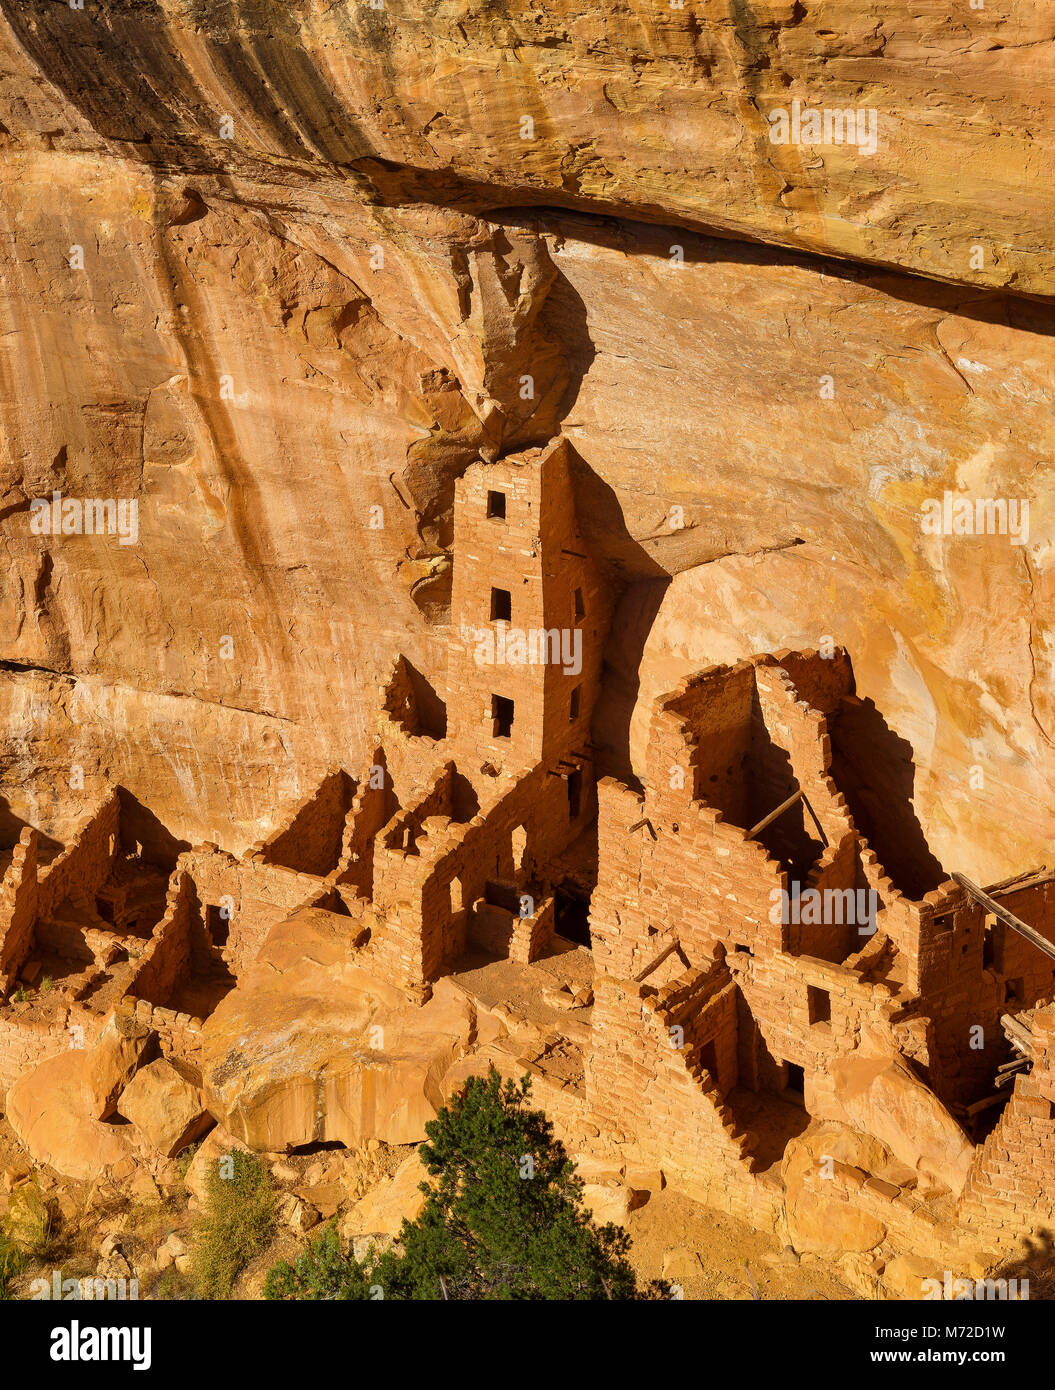 Square Tower House Ruin, Mesa Verde National Park, Ute Indian Reservation, Montezuma County, Colorado Stock Photo